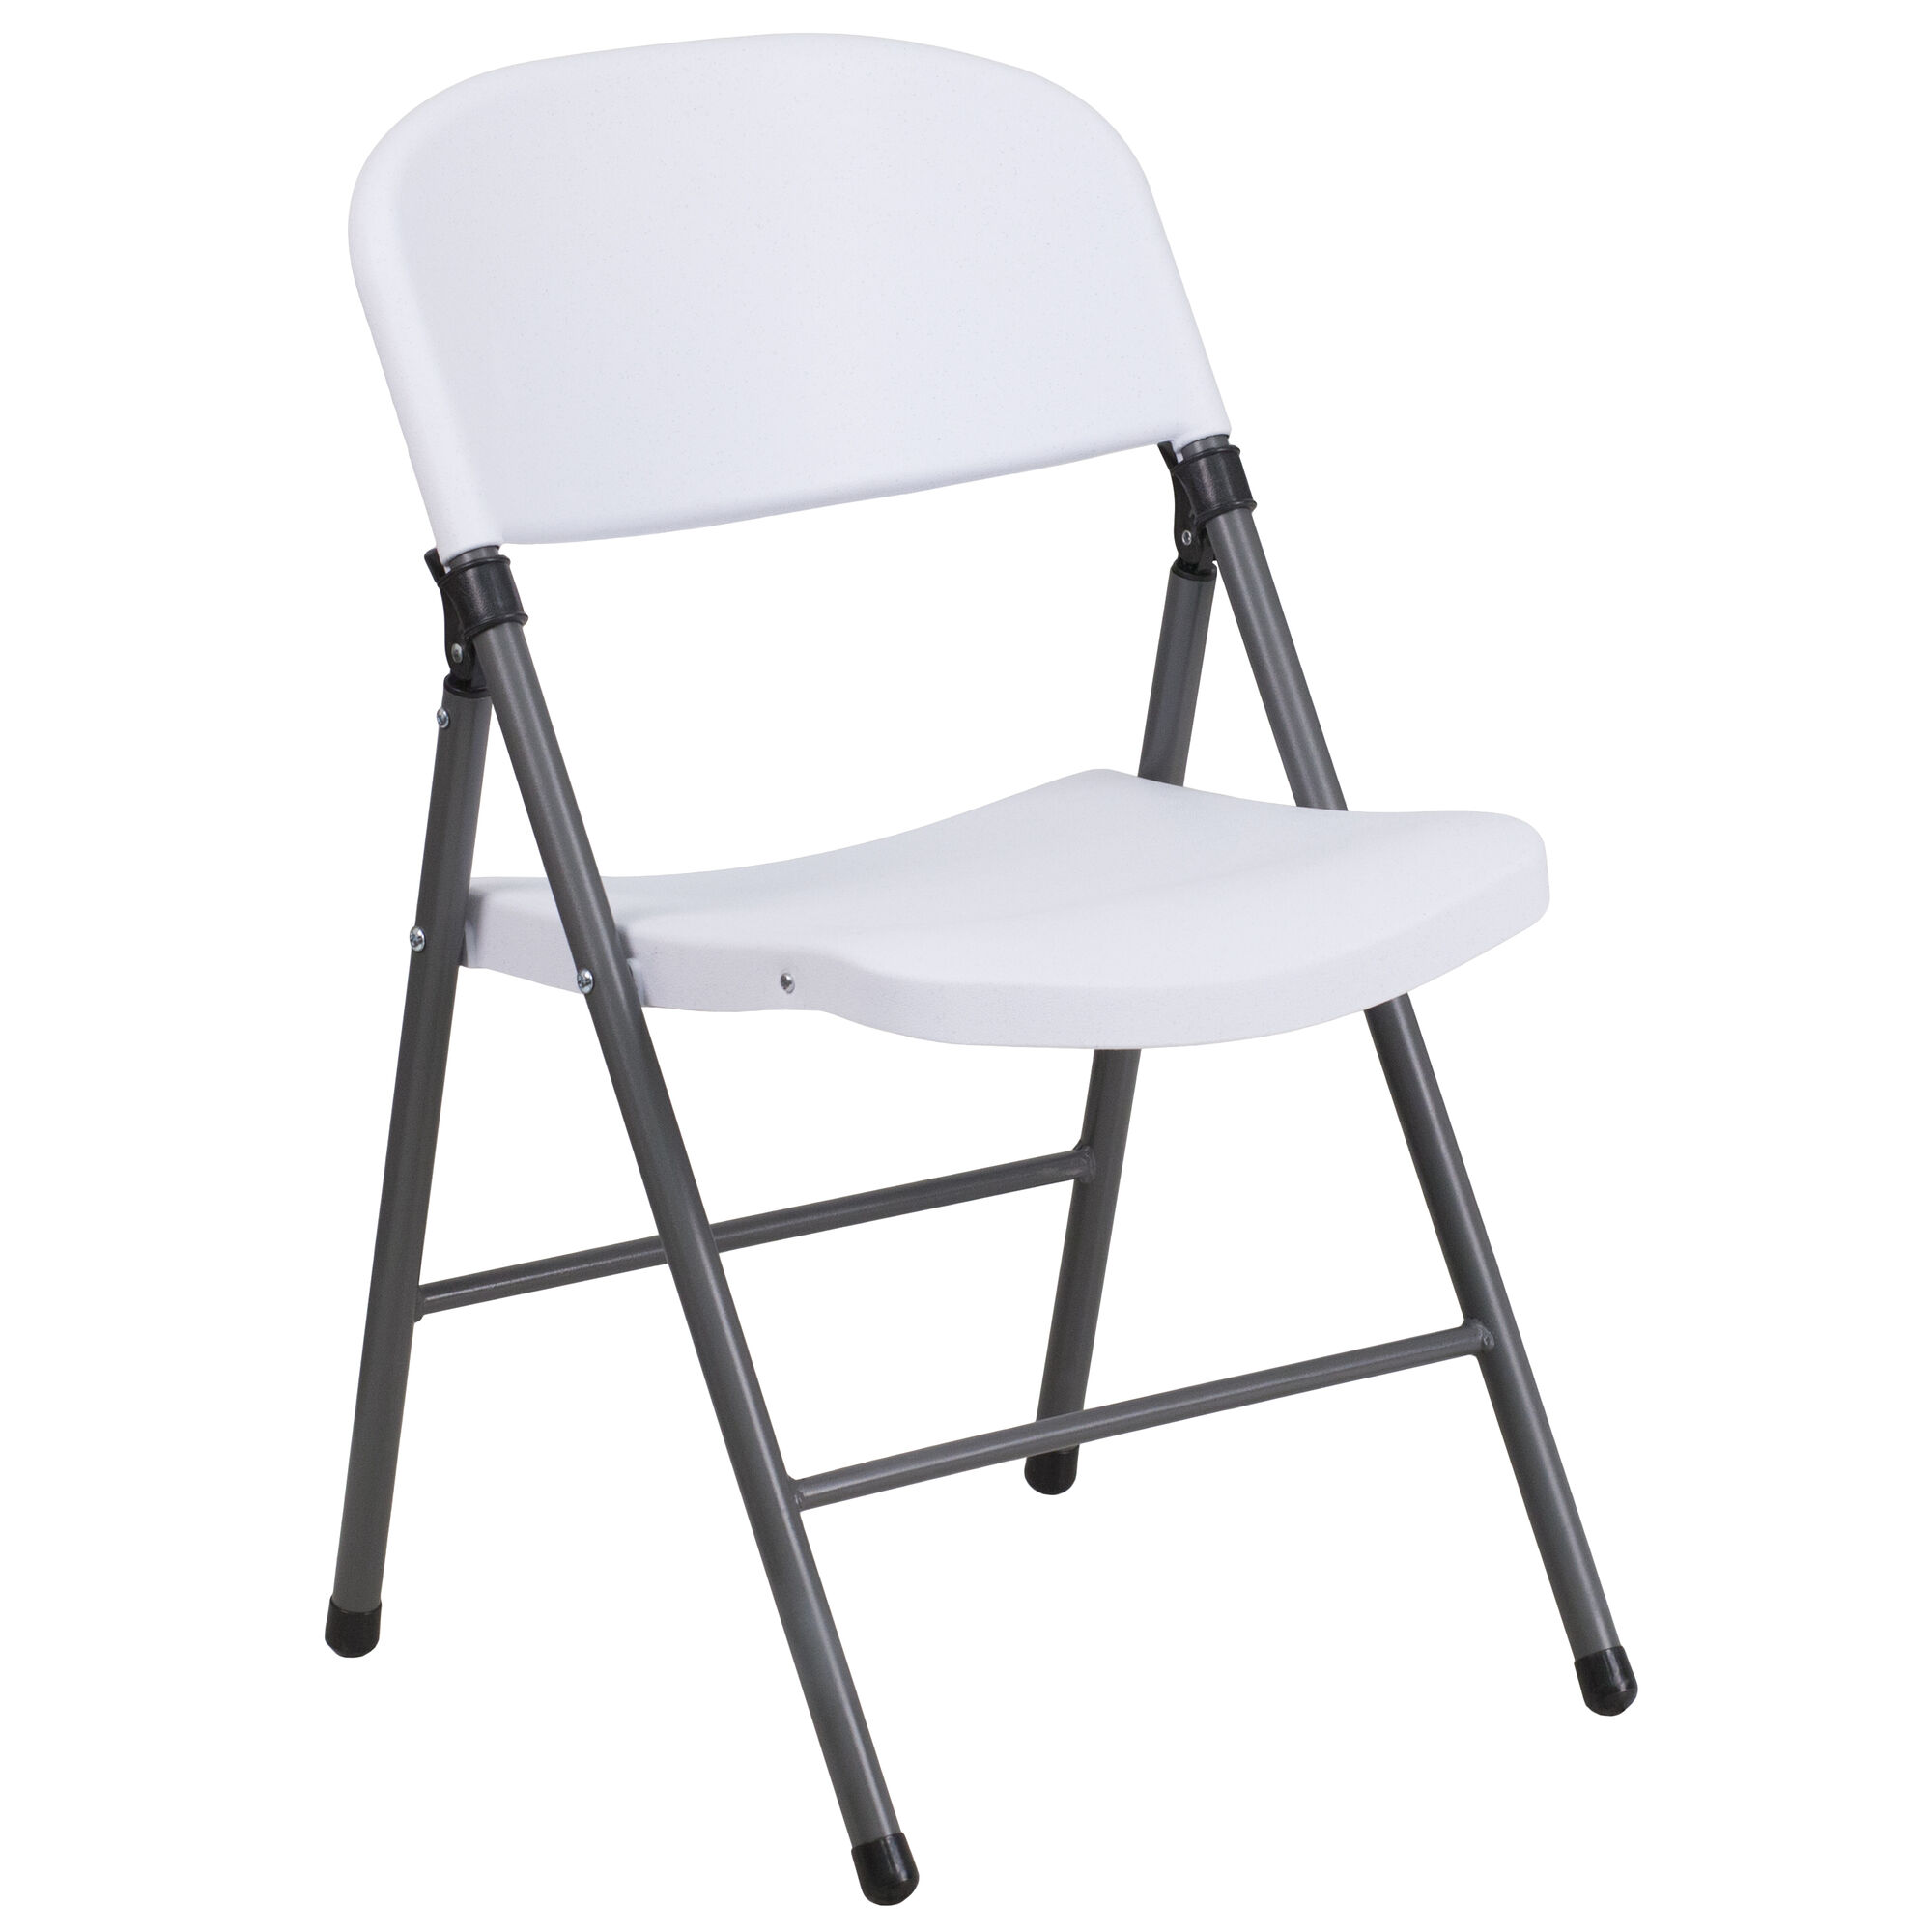 White Plastic Folding Chair Dad Ycd 50 Wh Gg Foldingchairs4less Com